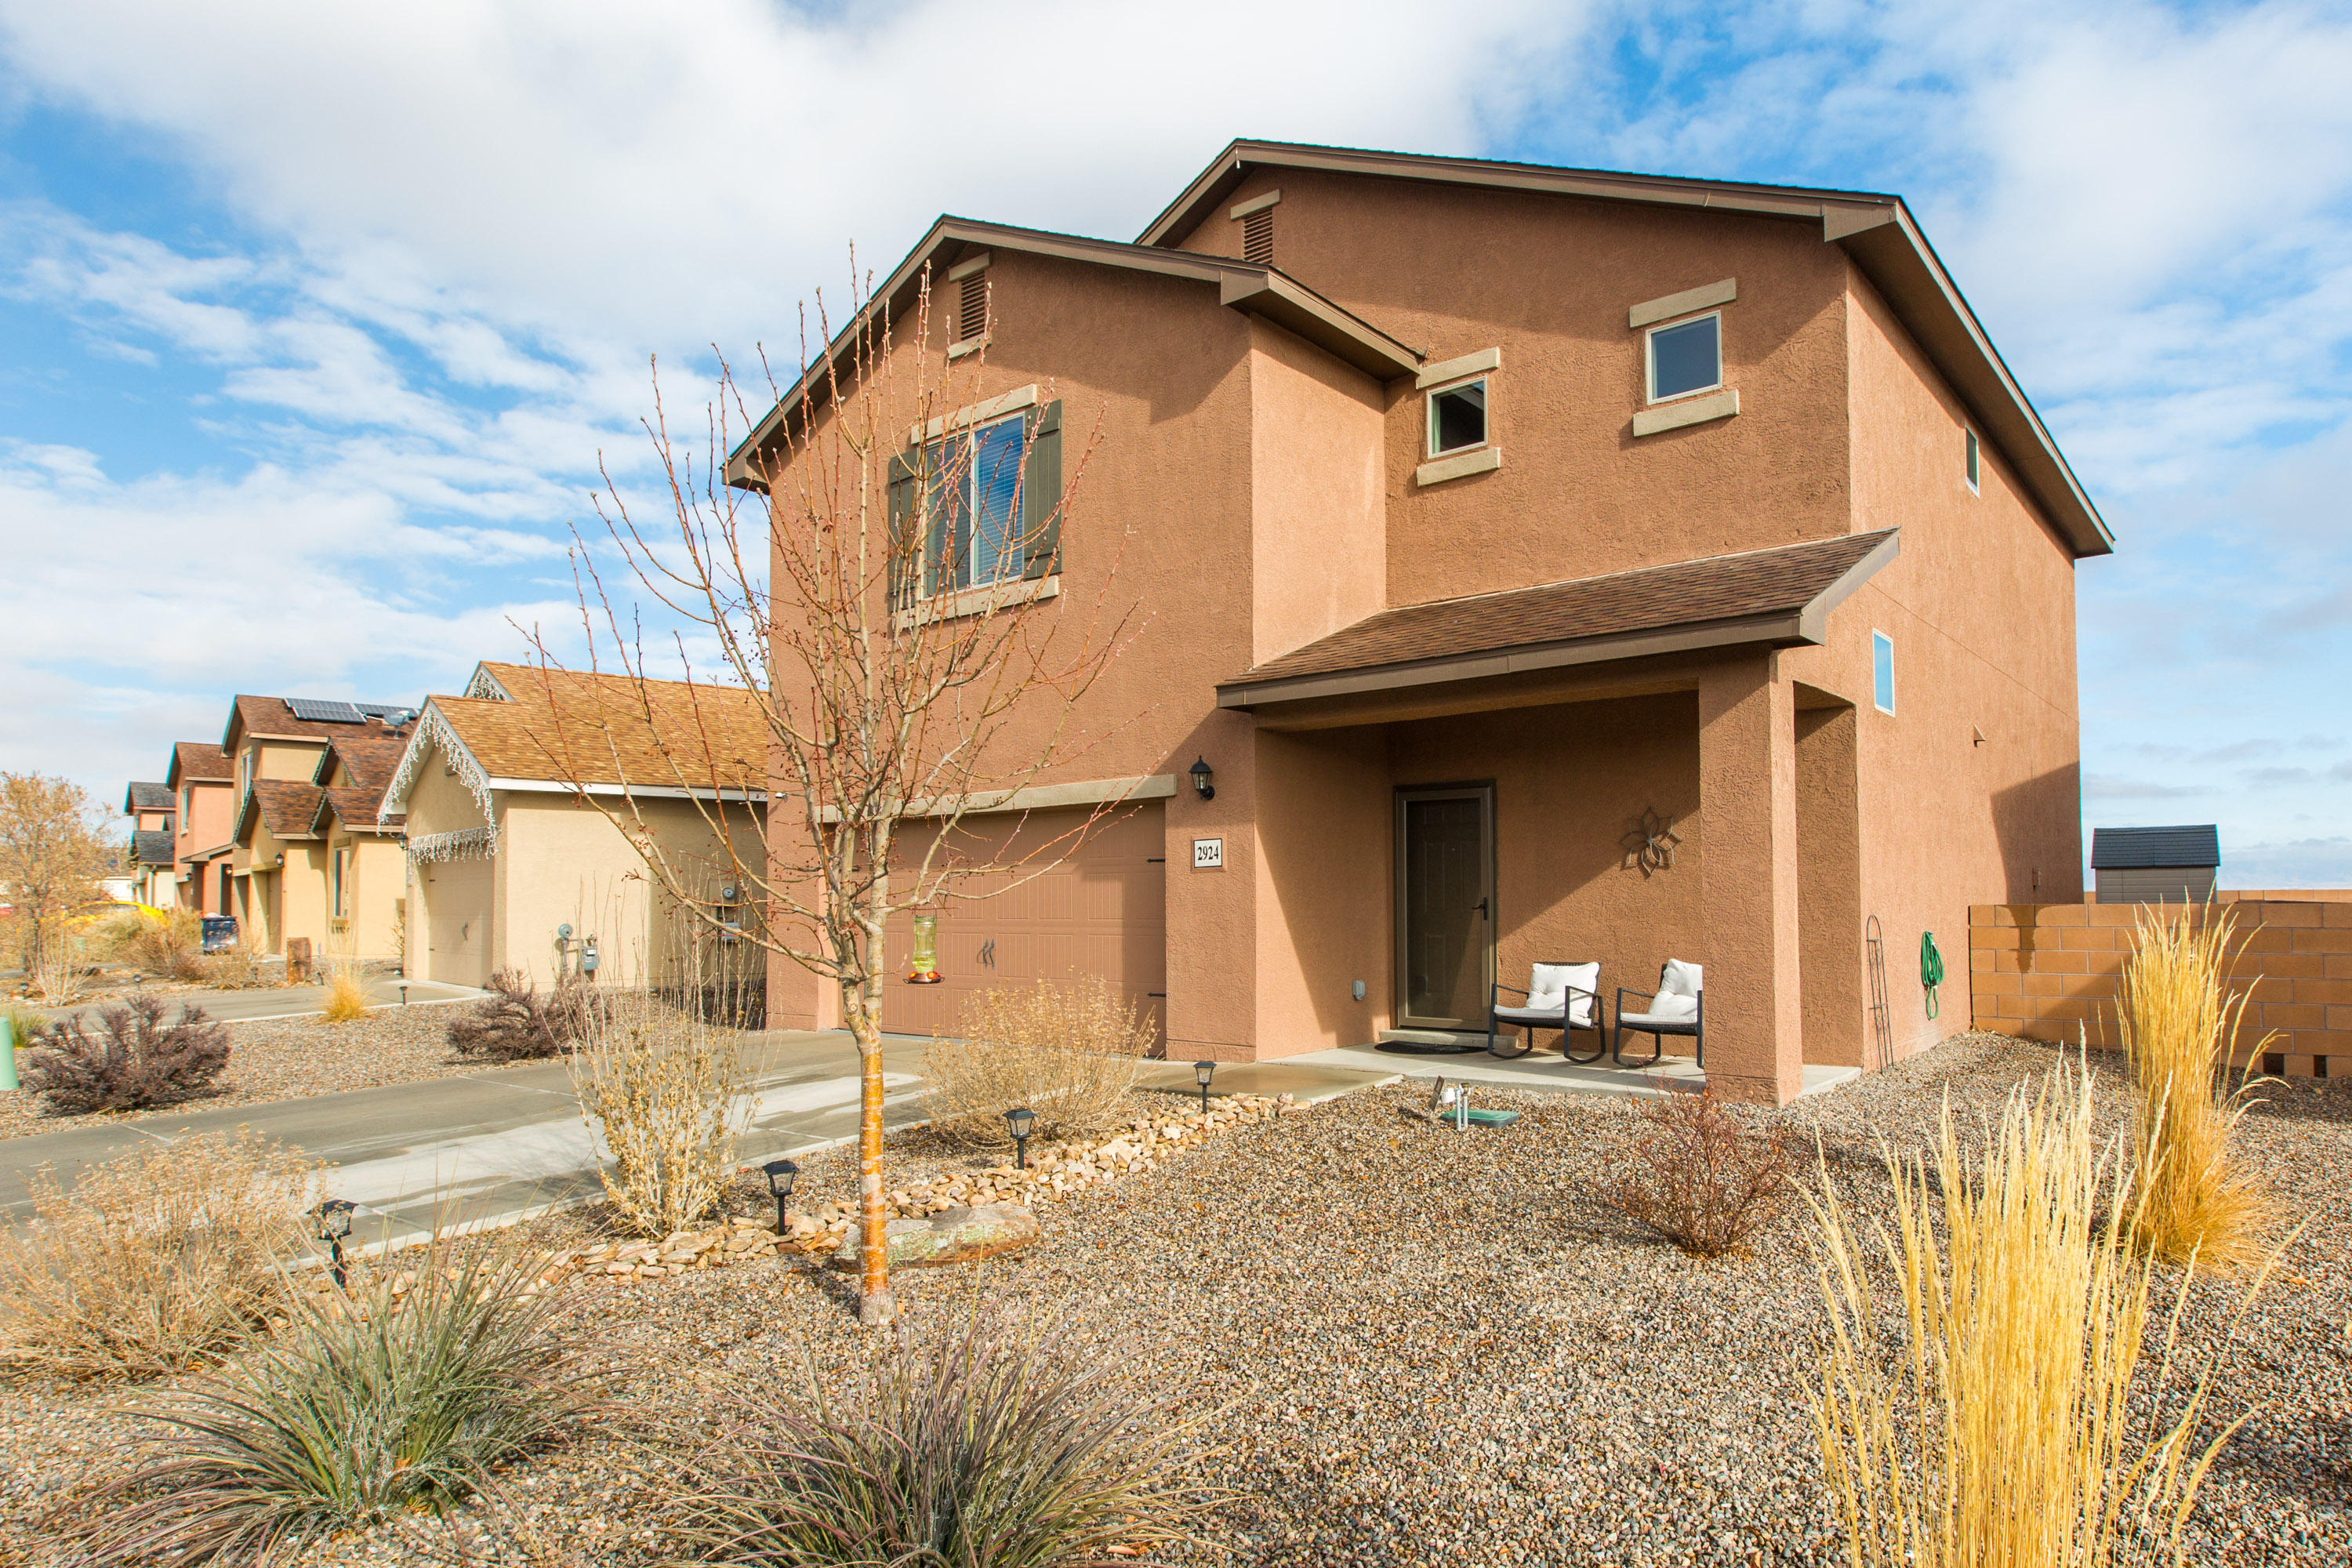 Gorgeous, newer two story LGI home completed in 2017. Stylish updates and incredible views of the Sandia Mountains make for an incredible home. Find all four bedrooms and the laundry room located on the second level, leaving your living room, kitchen, and half bath on the main level. Enjoy the backyard under the gazebo or the clean, finished, two car garage (with ceiling fan!) in addition to the beautiful indoor living space. Contact your Realtor for a showing or virtual tour today!